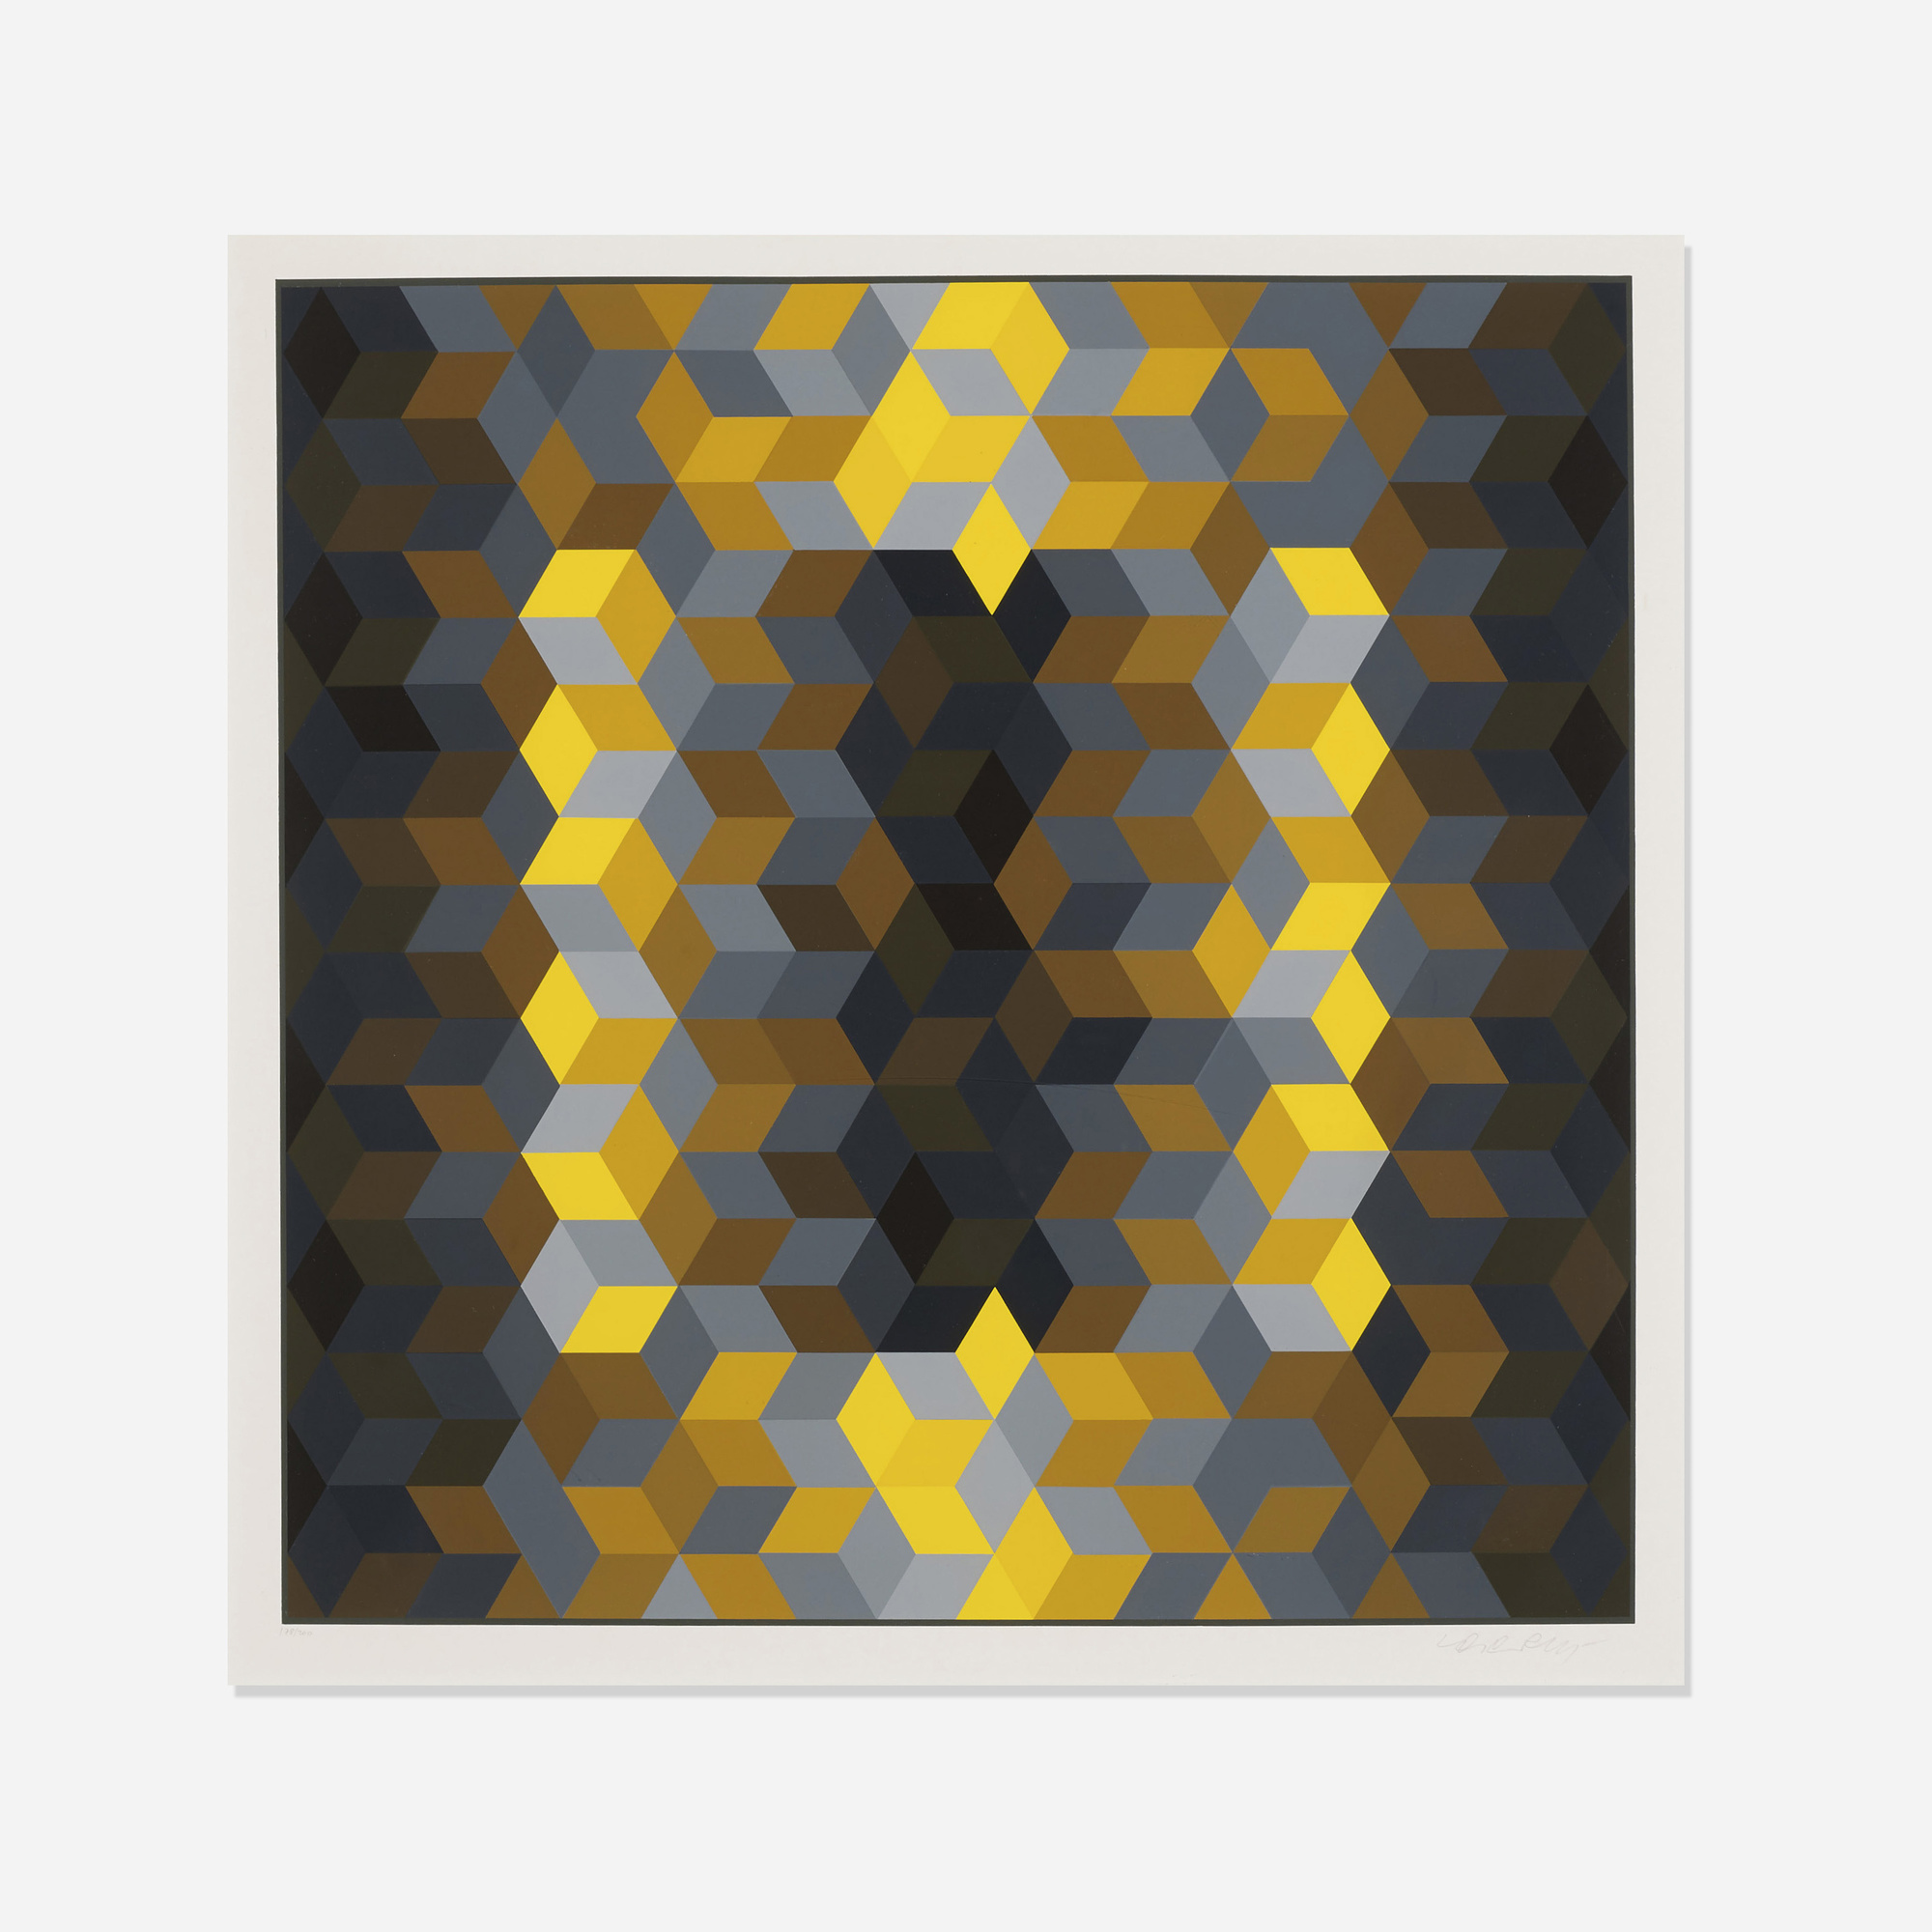 233: Victor Vasarely / Untitled (from the Homage to the Hexagon series) (1 of 1)